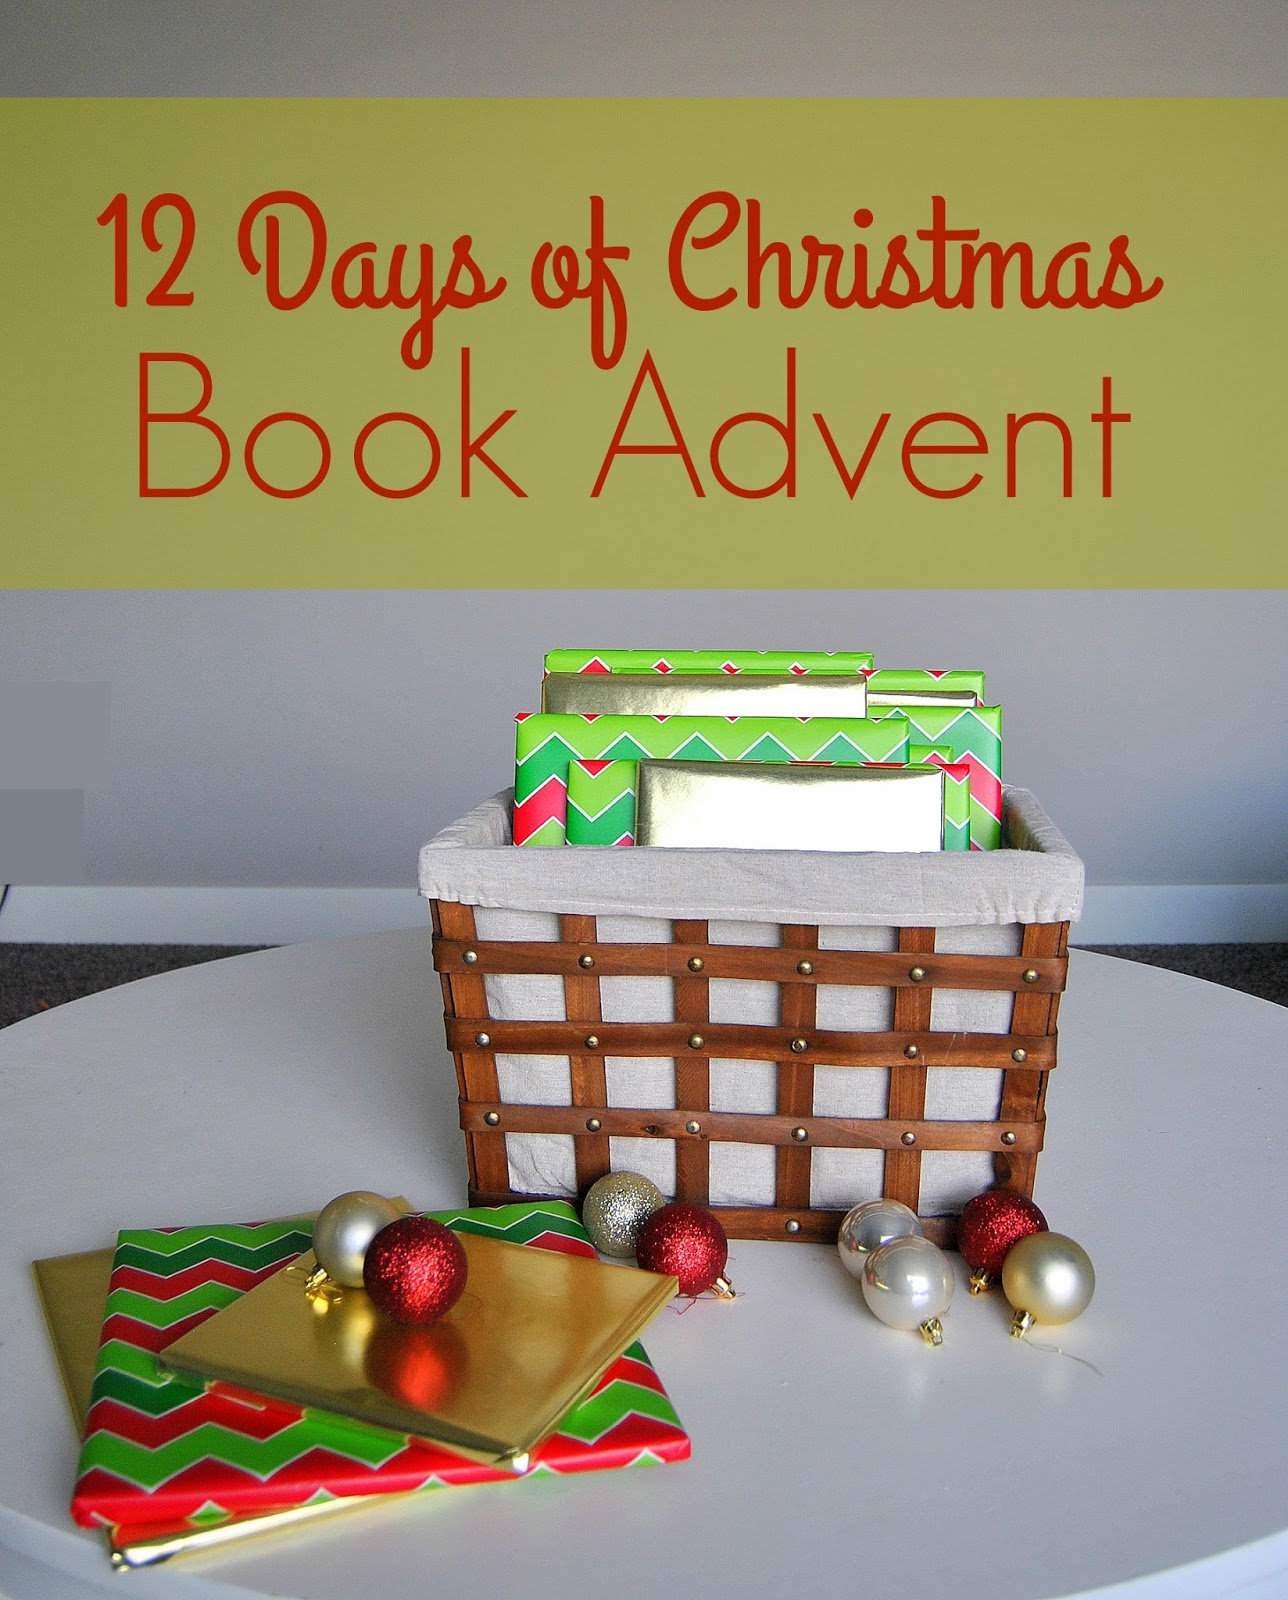 12 days of christmas picture book advent countdown - 12 Days Of Christmas Book